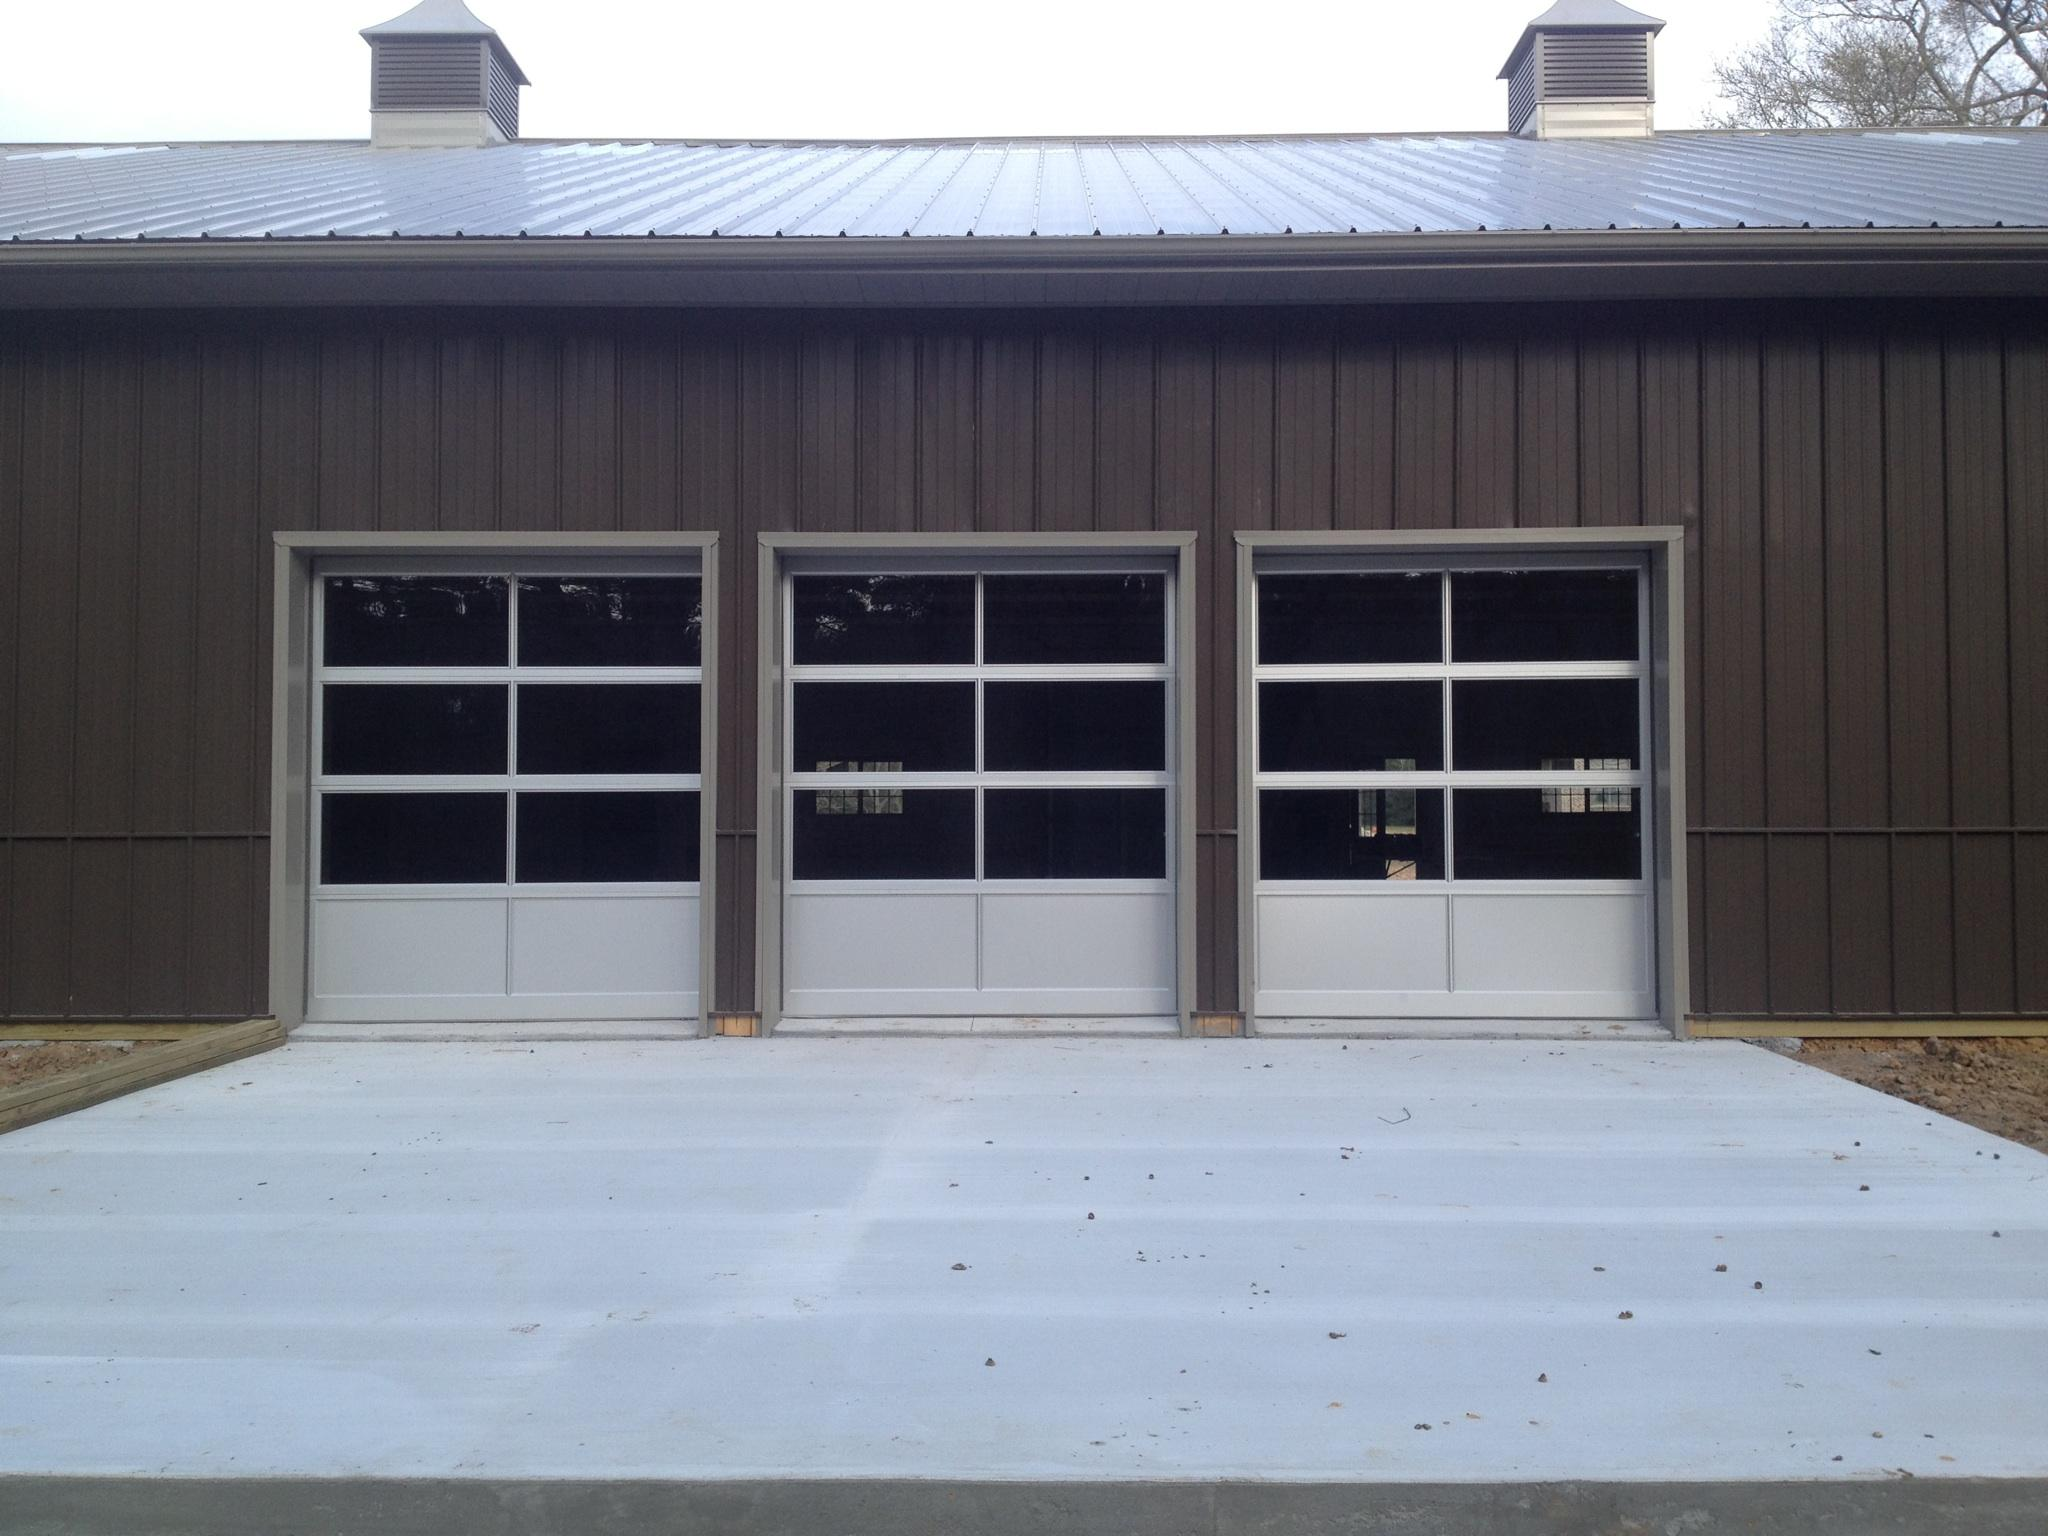 gallery industrial residential central highslide commercial js garage doors door